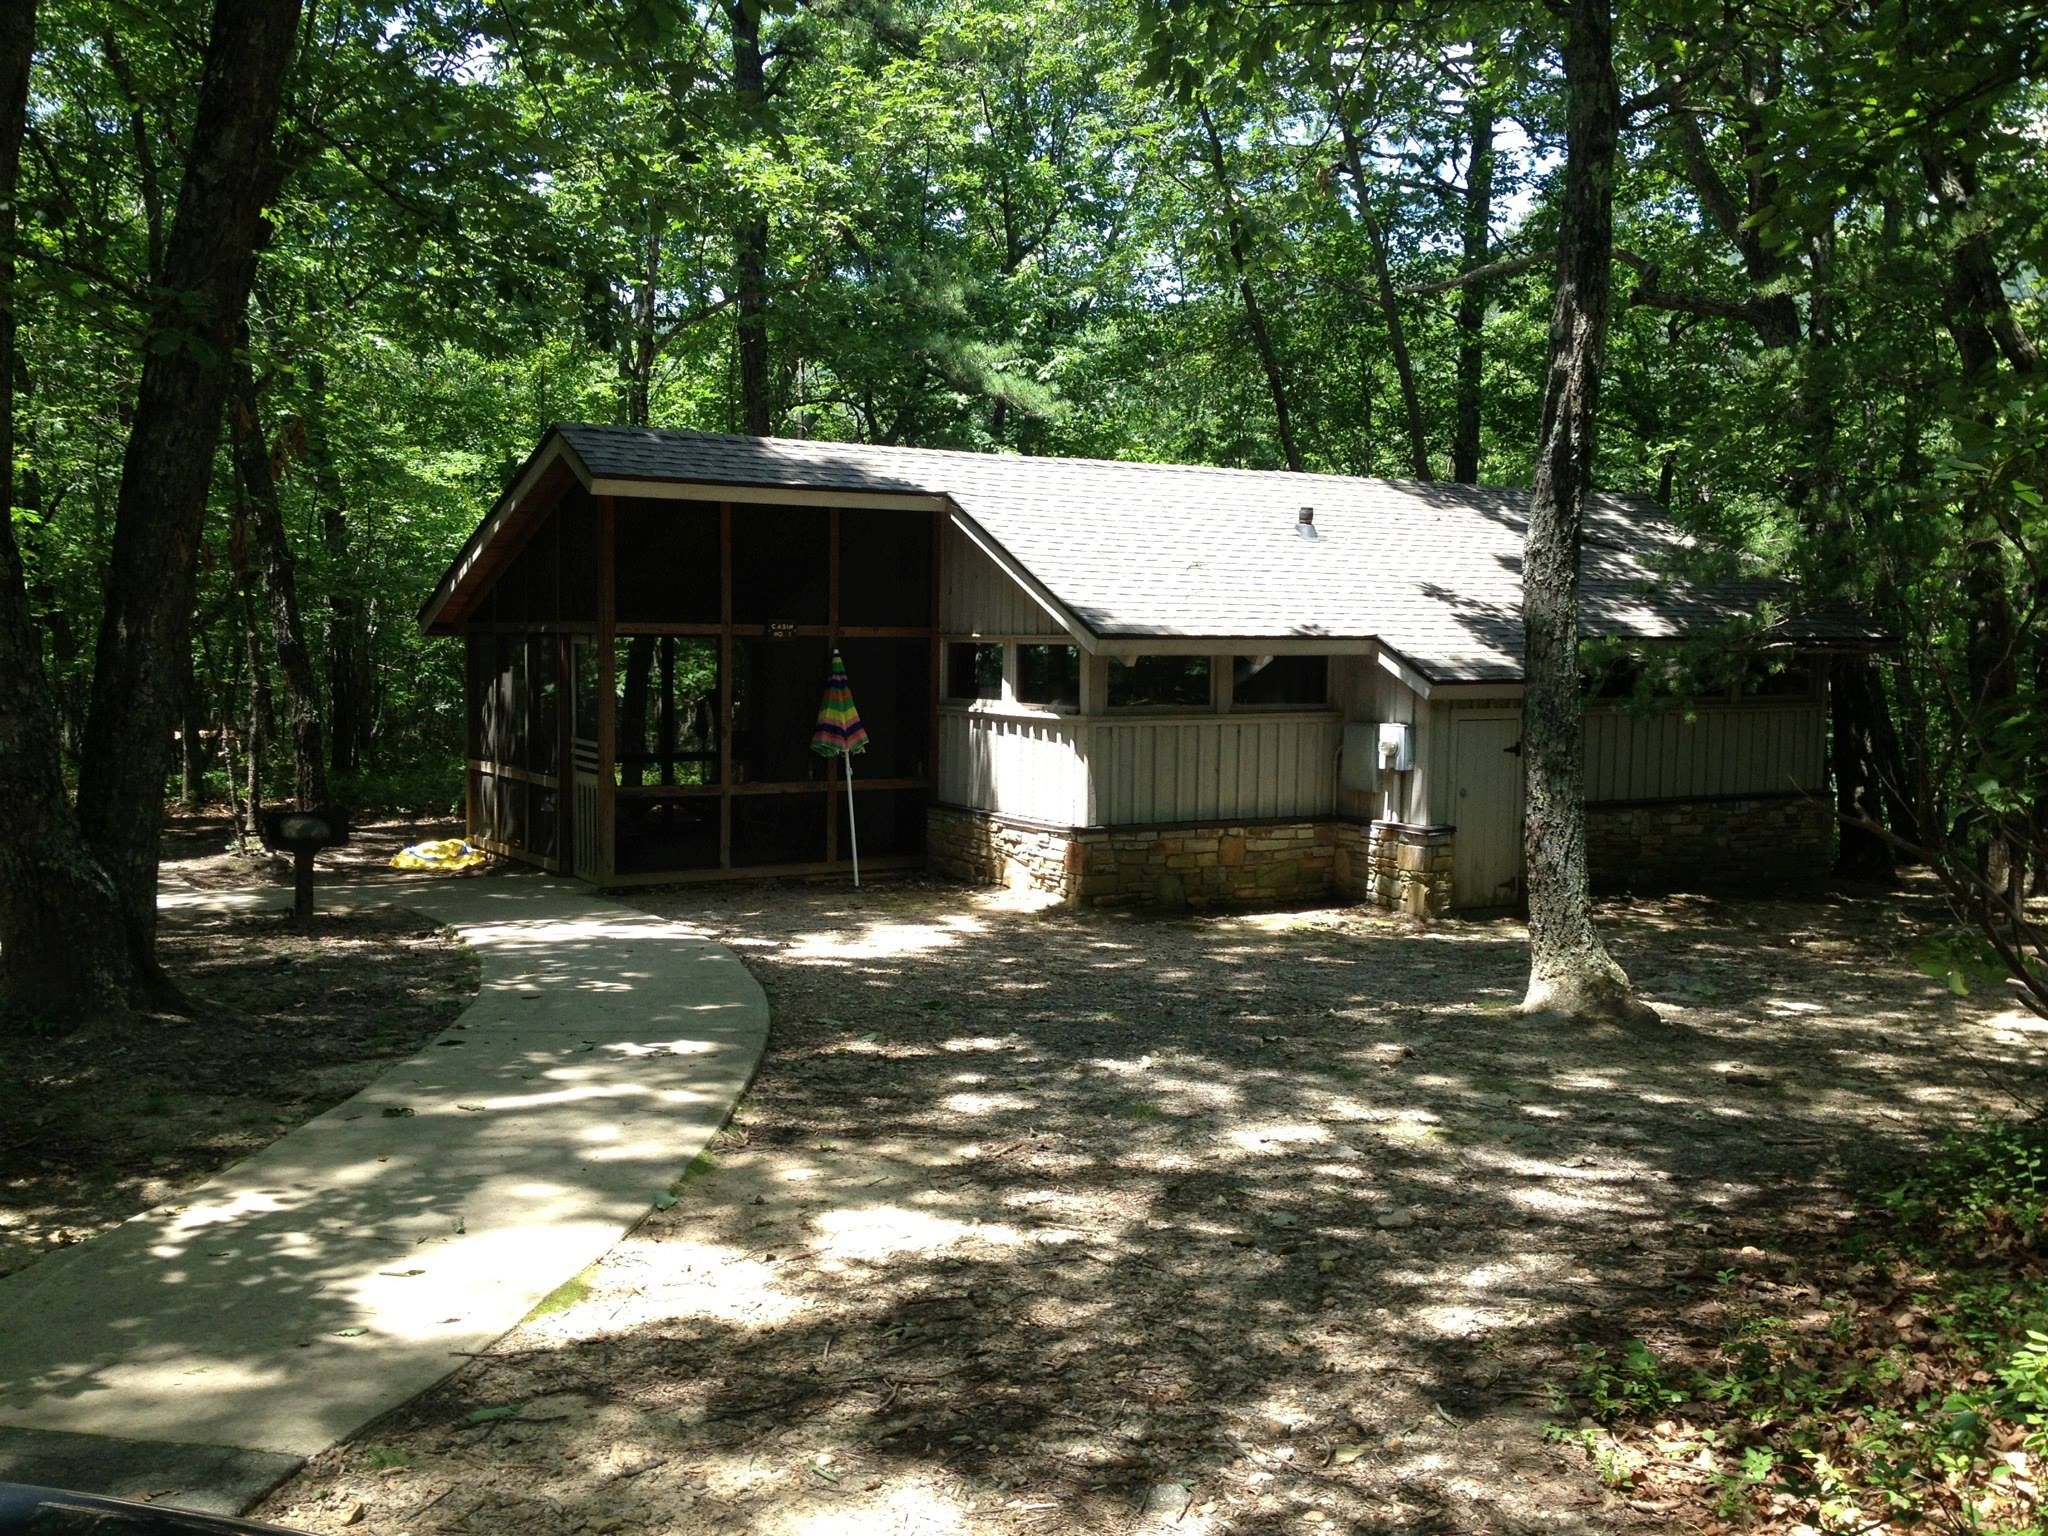 Delicieux Cabins Available For Rent At Hanging Rock State Park